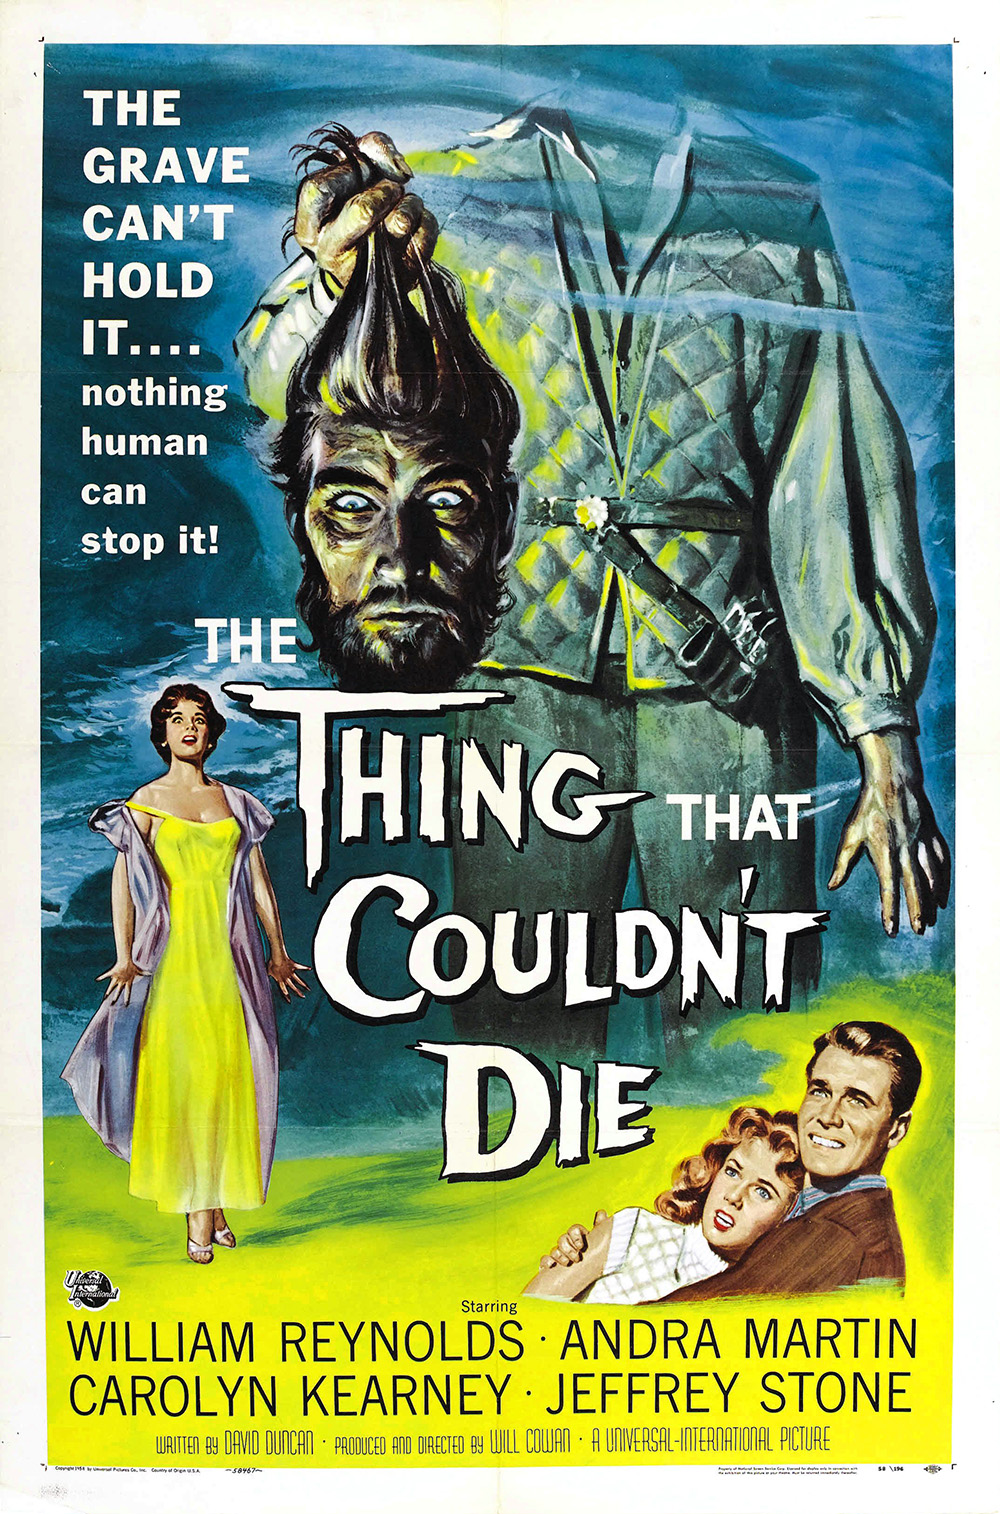 The Thing That Couldn't Die - 1958